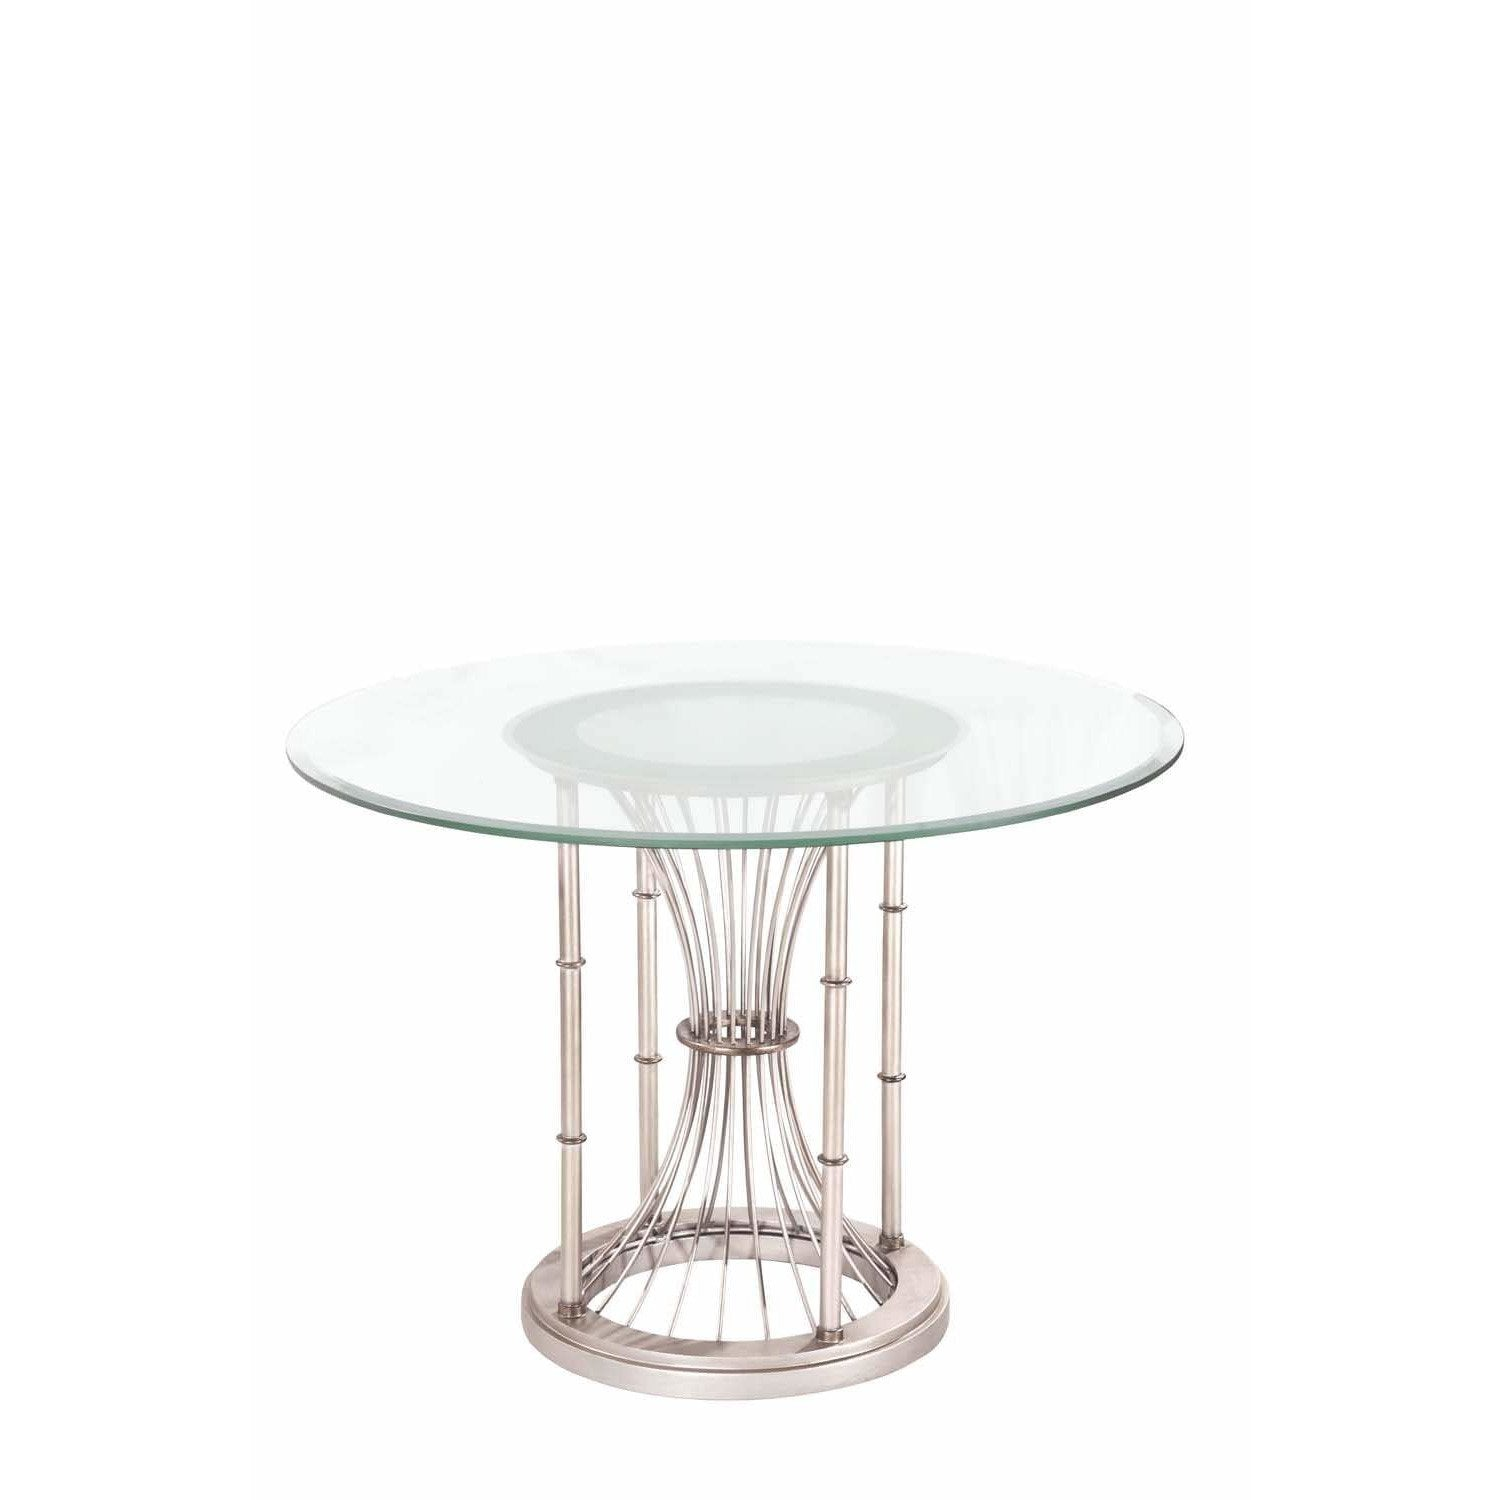 Kalco Lighting Dining Tables Pearl Silver Bal Harbour Dining Table By Kalco Lighting 800102